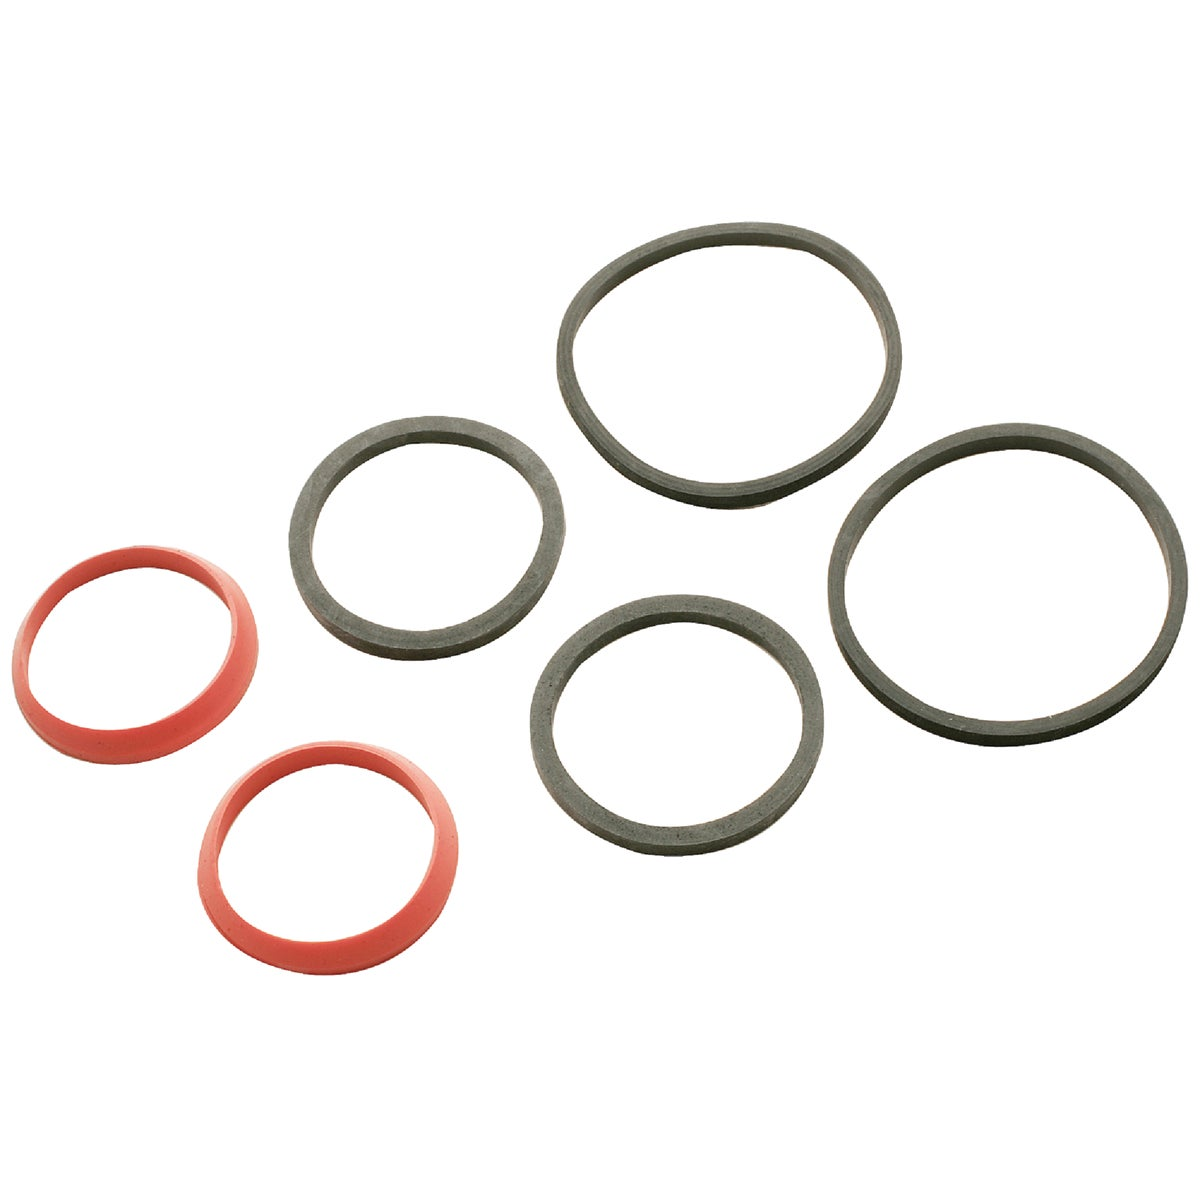 6PK RBR SJ WASHERS - 25513K by Plumb Pak/keeney Mfg